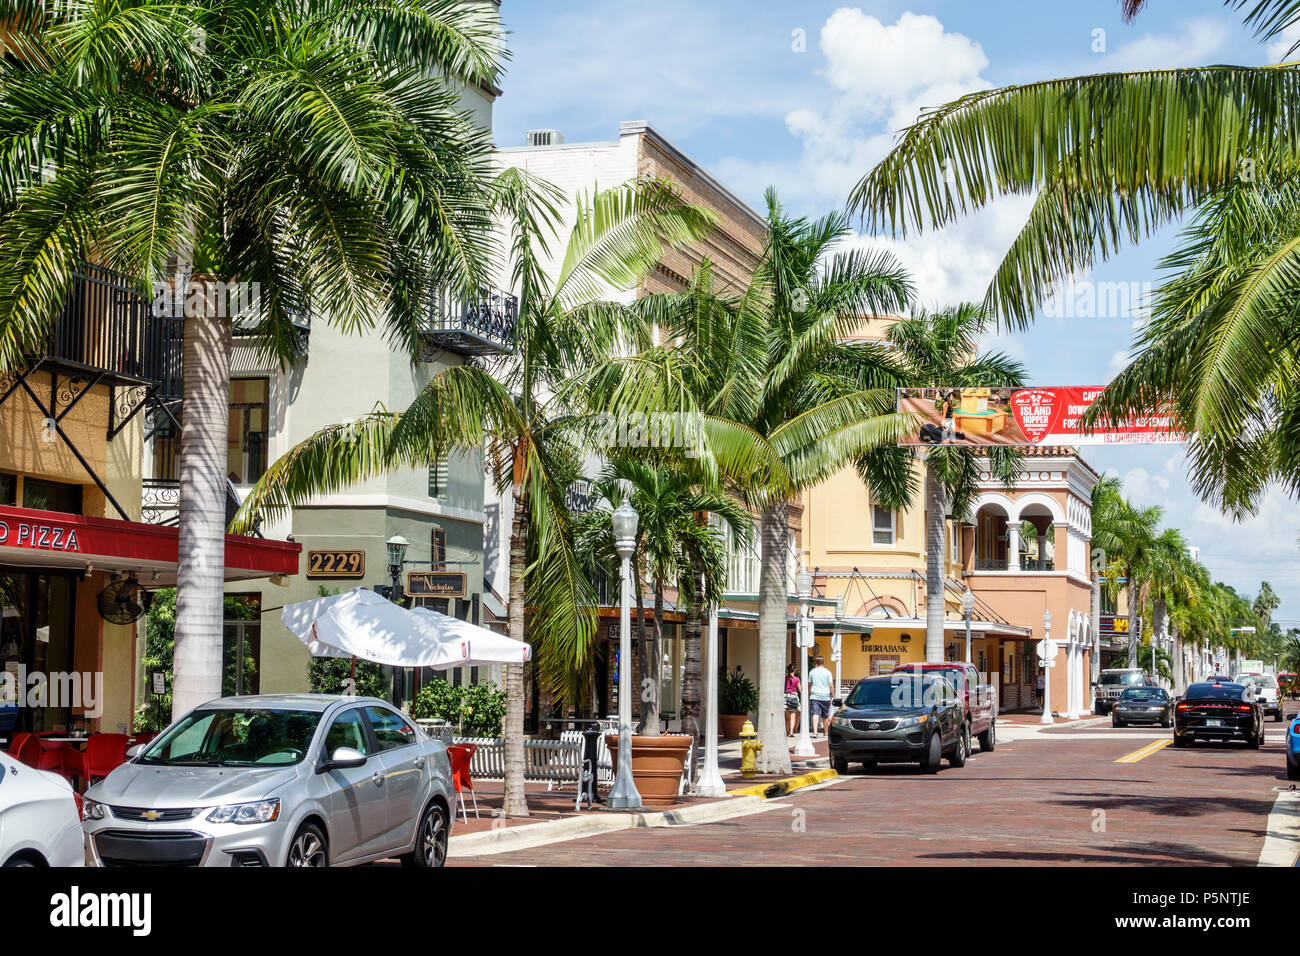 Fort Ft. Myers Florida River District 1ère Street quartier commerçant du centre-ville entreprises développement économique zone commerciale des voitures en stationnement palm tre Photo Stock